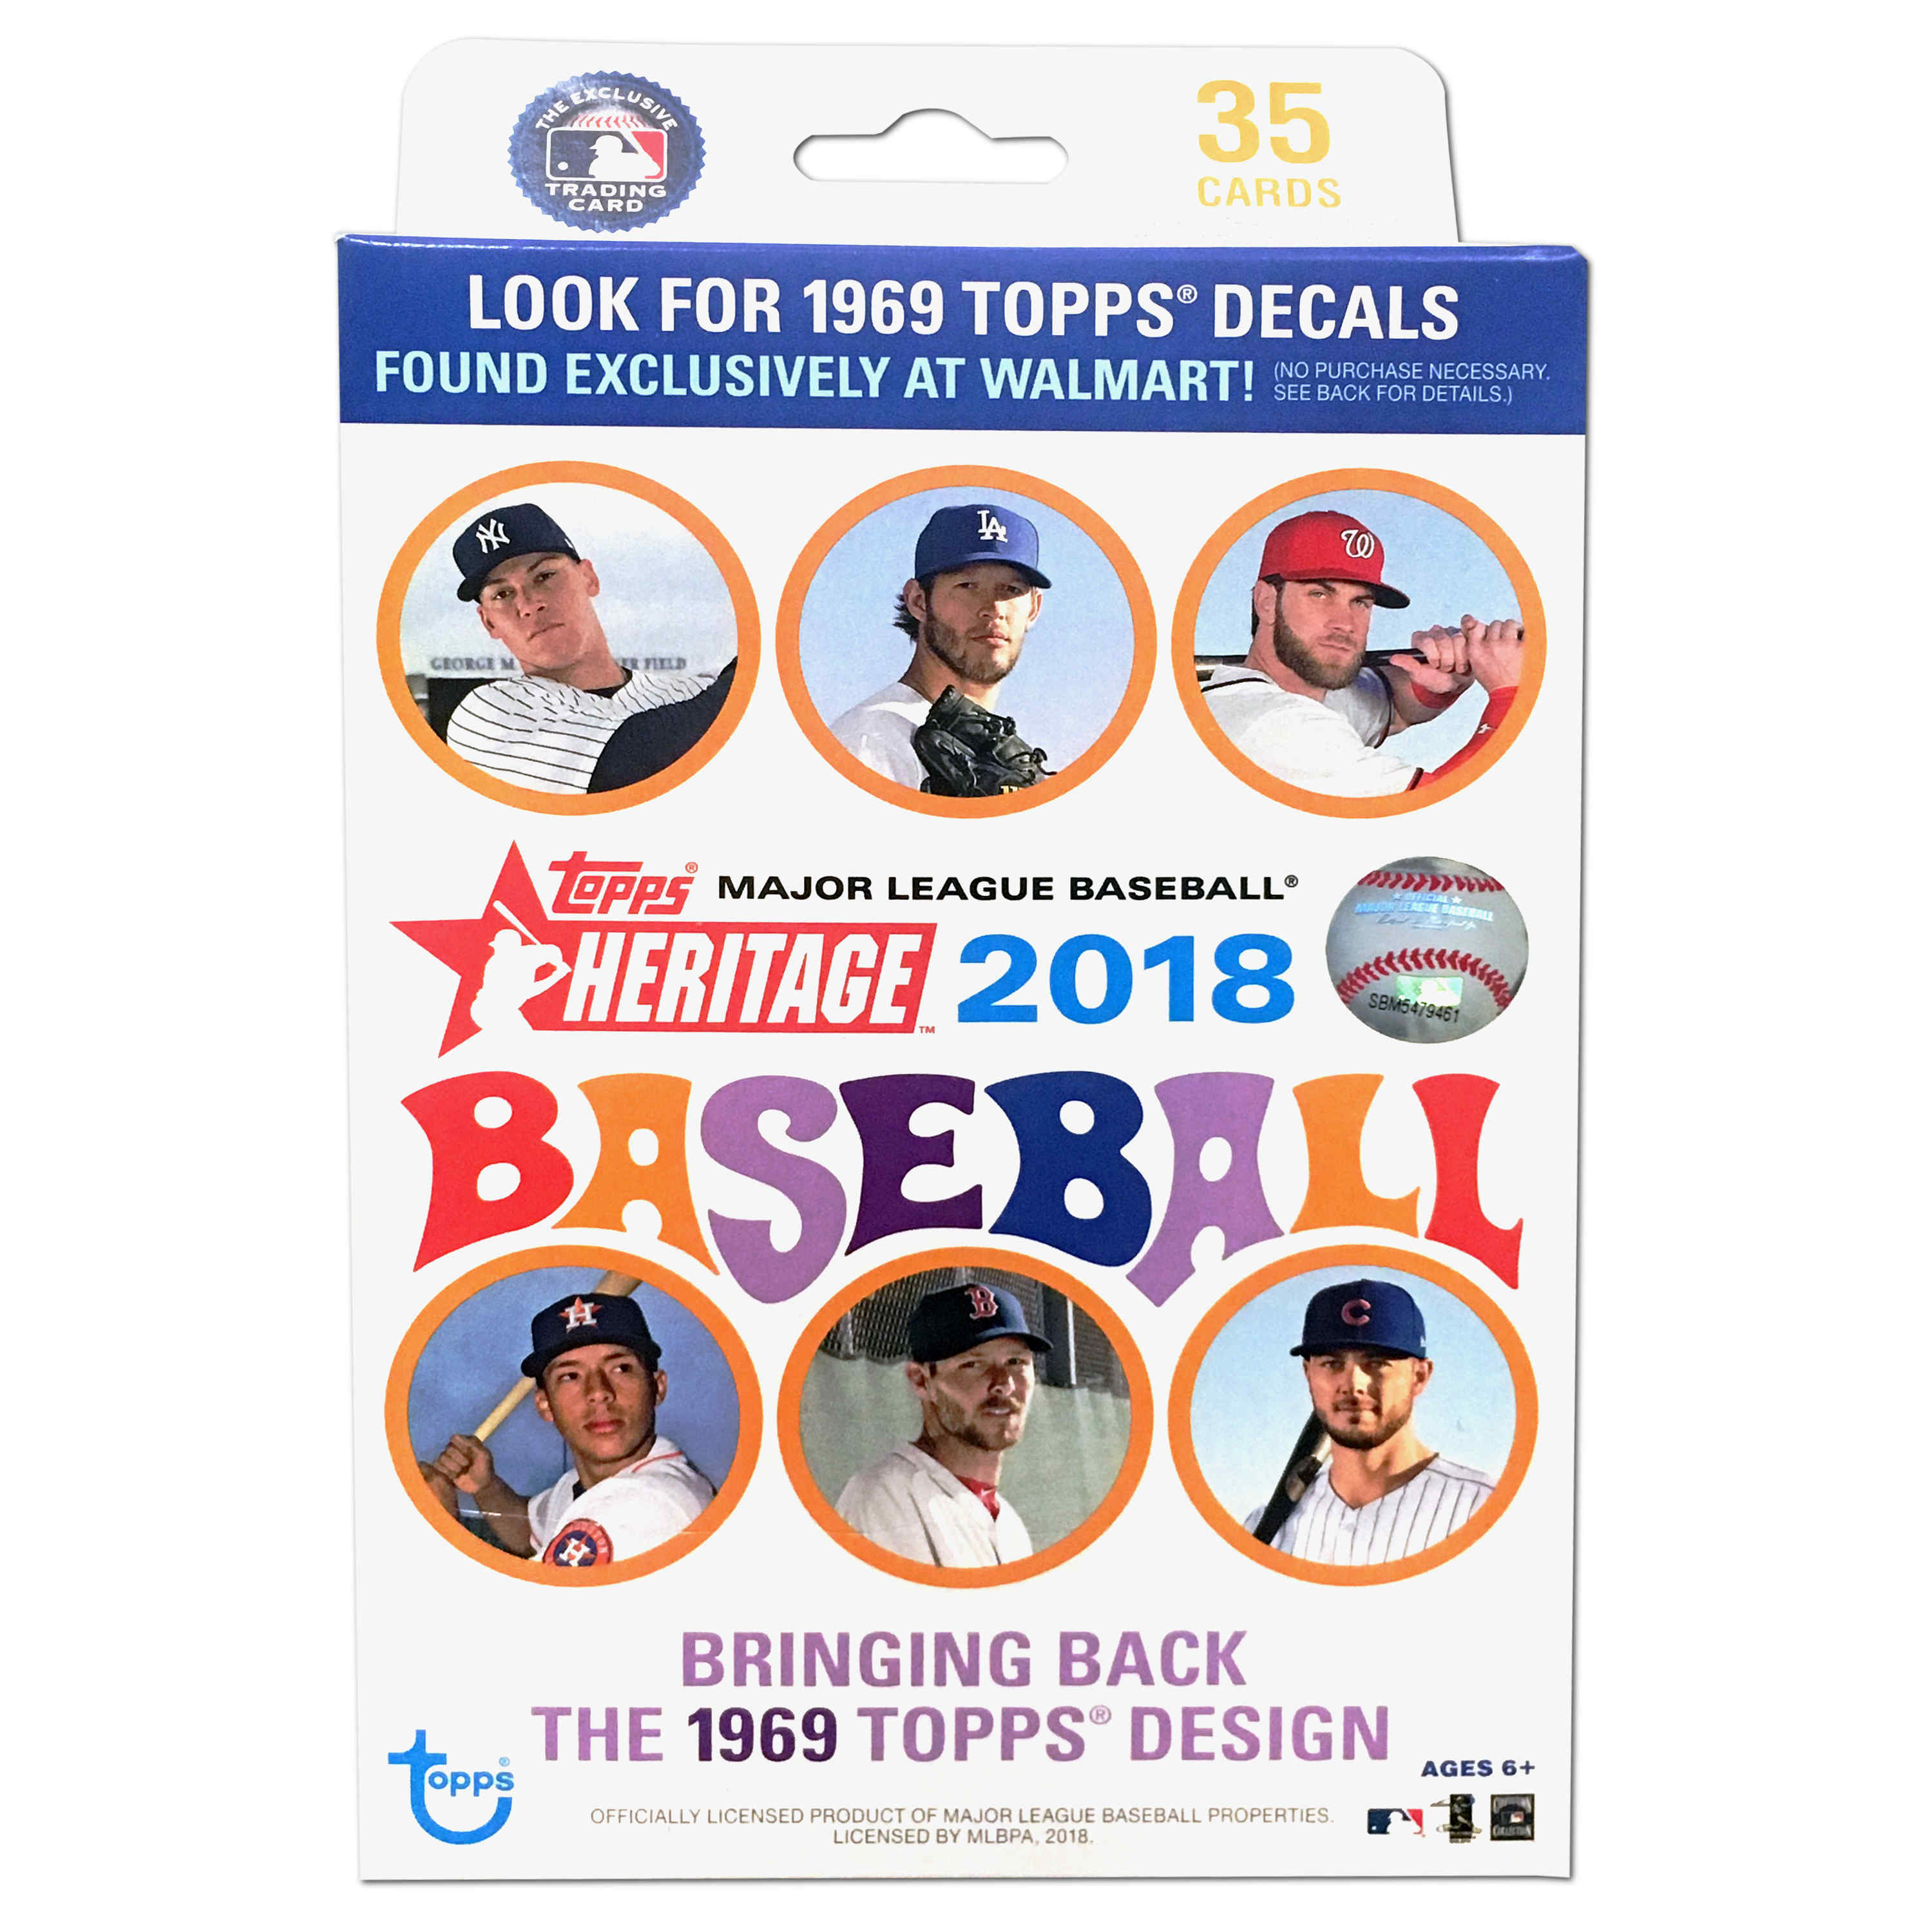 2018 Topps MLB Baseball Heritage Hanger Box Trading Cards | Featuring  Shohei Ohtani's Premiere| 1969 Design | Exclusive Decals only found in this  box